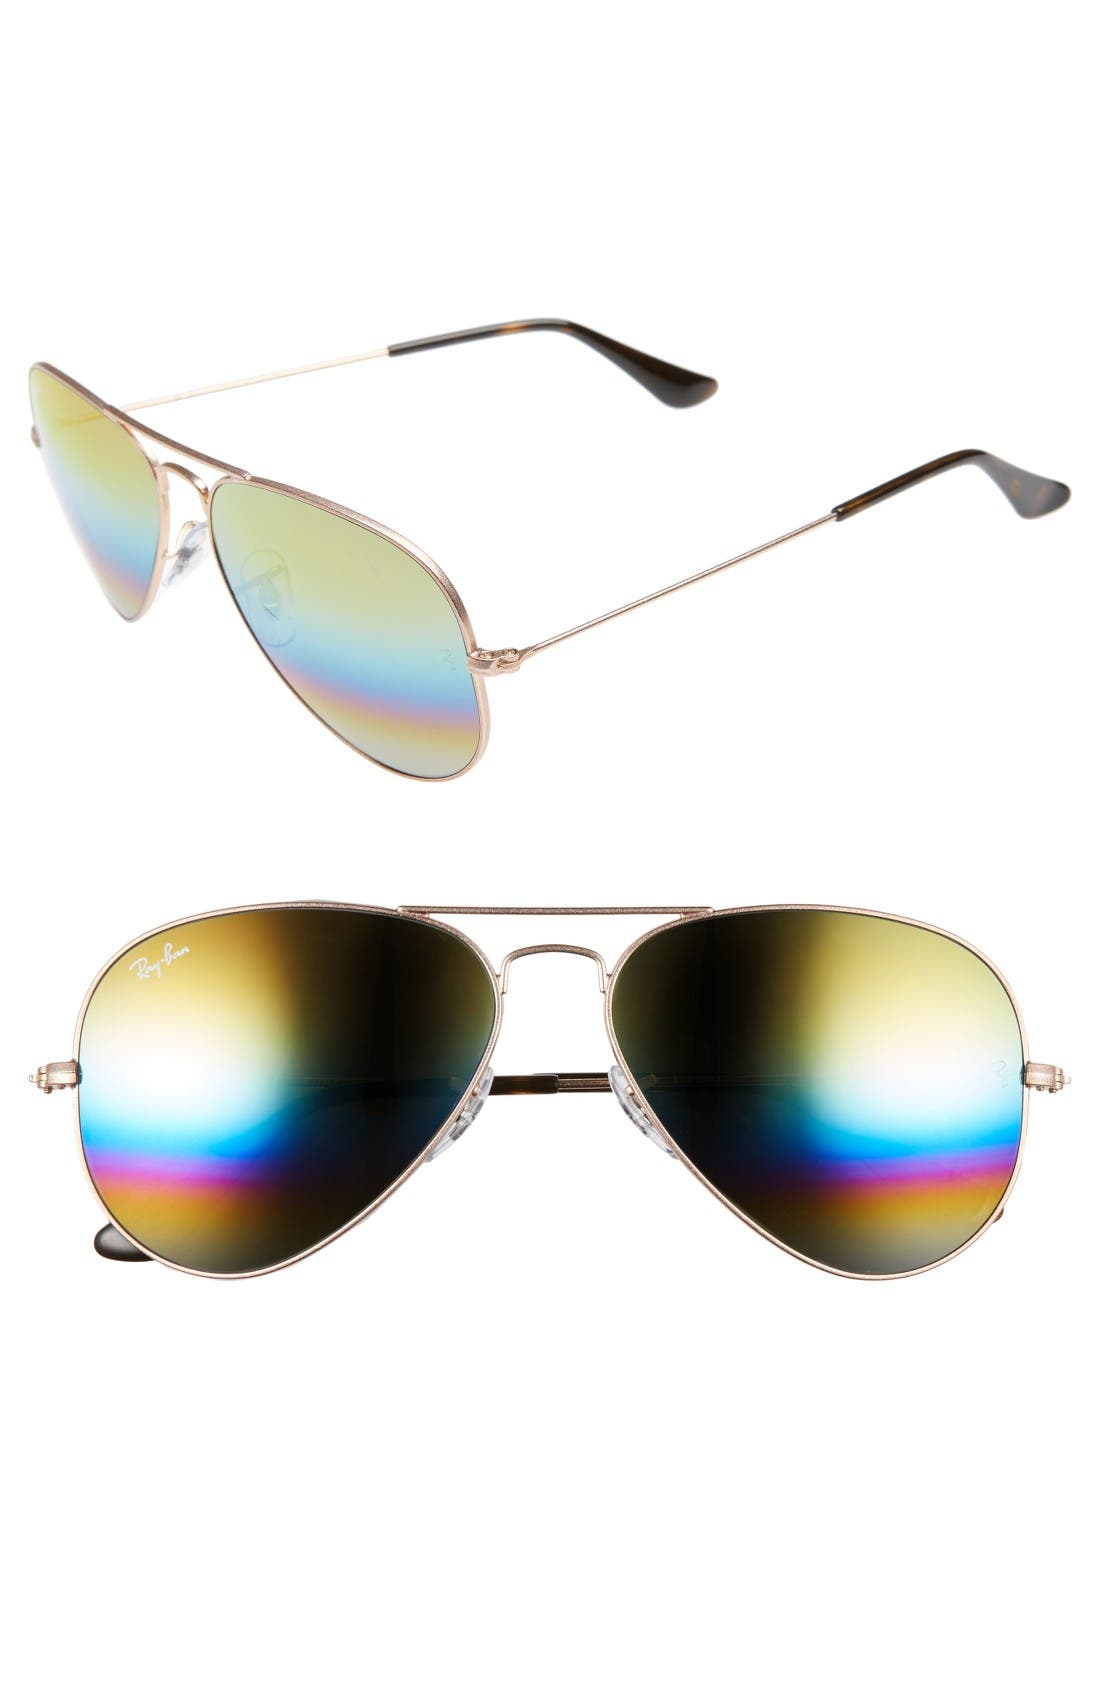 58mm Aviator Sunglasses,                         Main,                         color, Metallic Lght Bronze/ Mirror